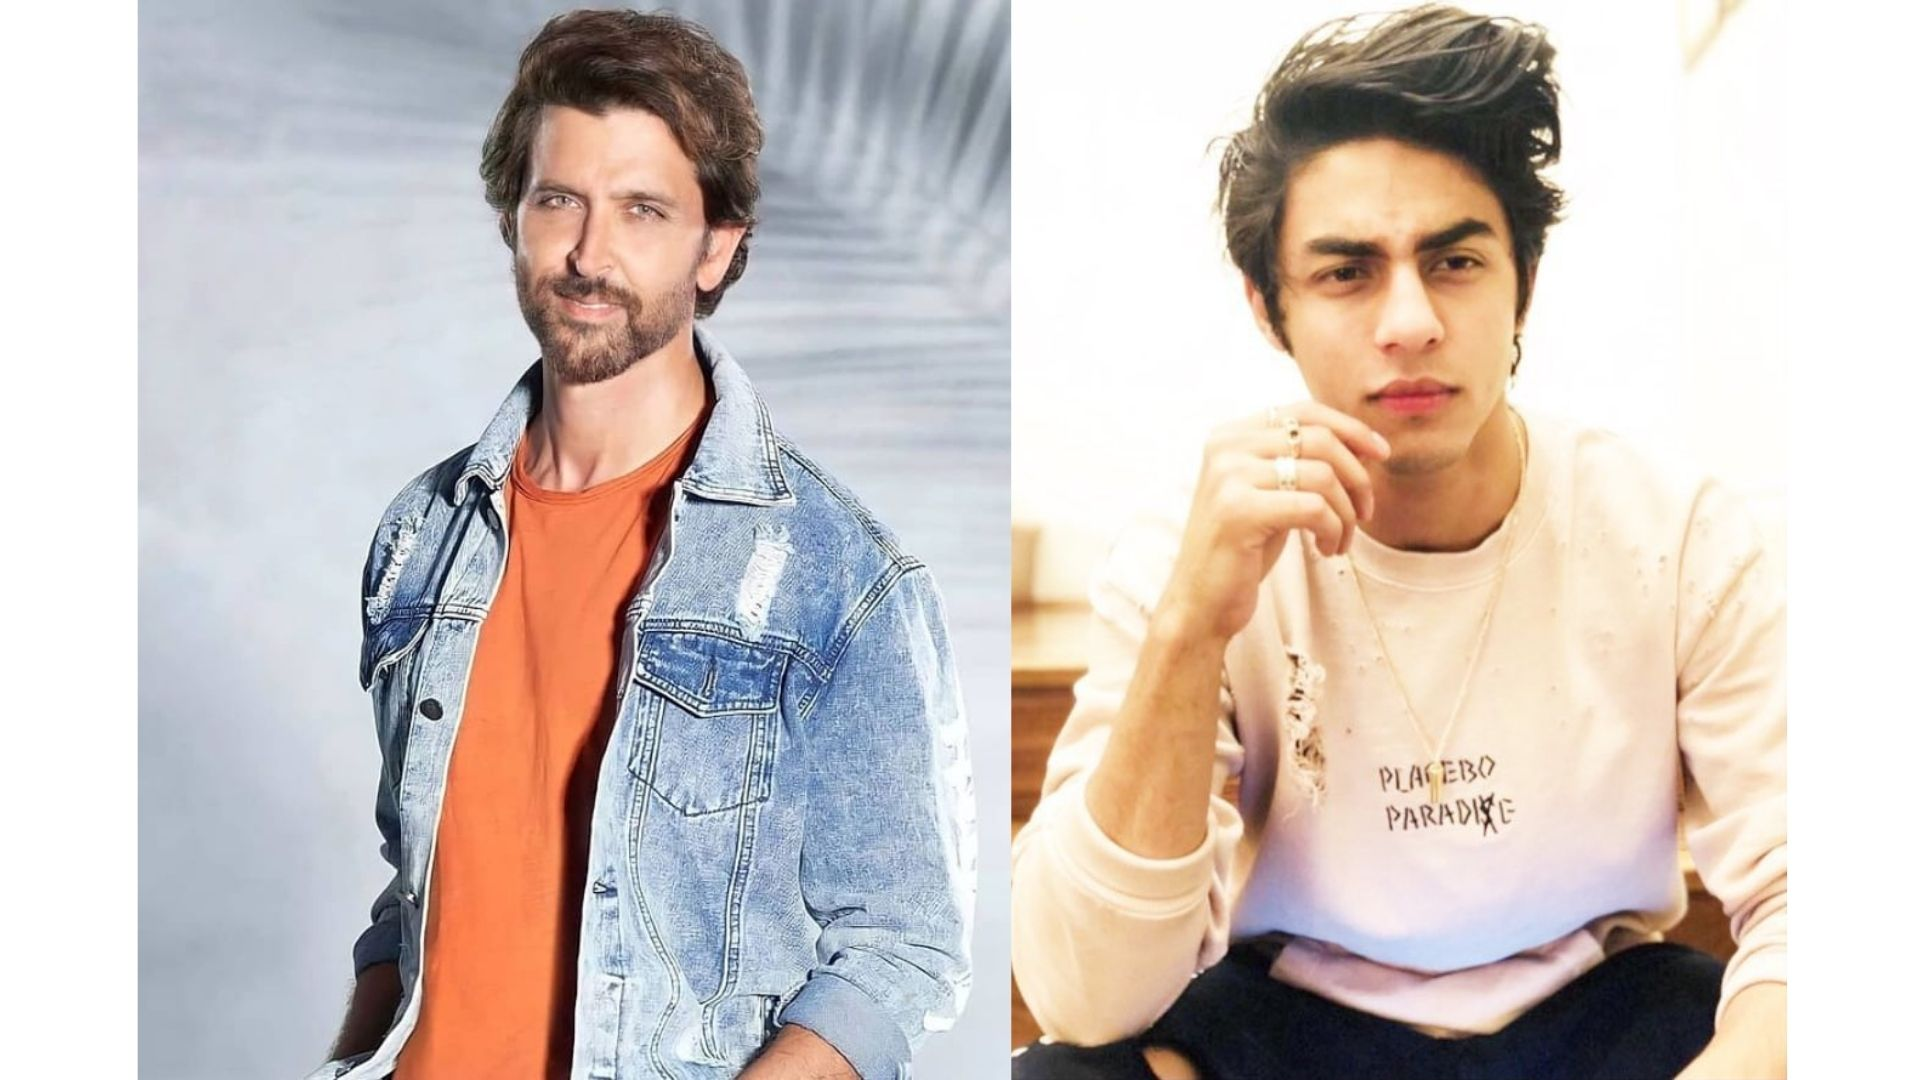 Hrithik Roshan SPEAKS UP In Support Of Aryan Khan; Pens A Long Note Advising Him To 'Keep Calm' – Read His Powerful Post Here